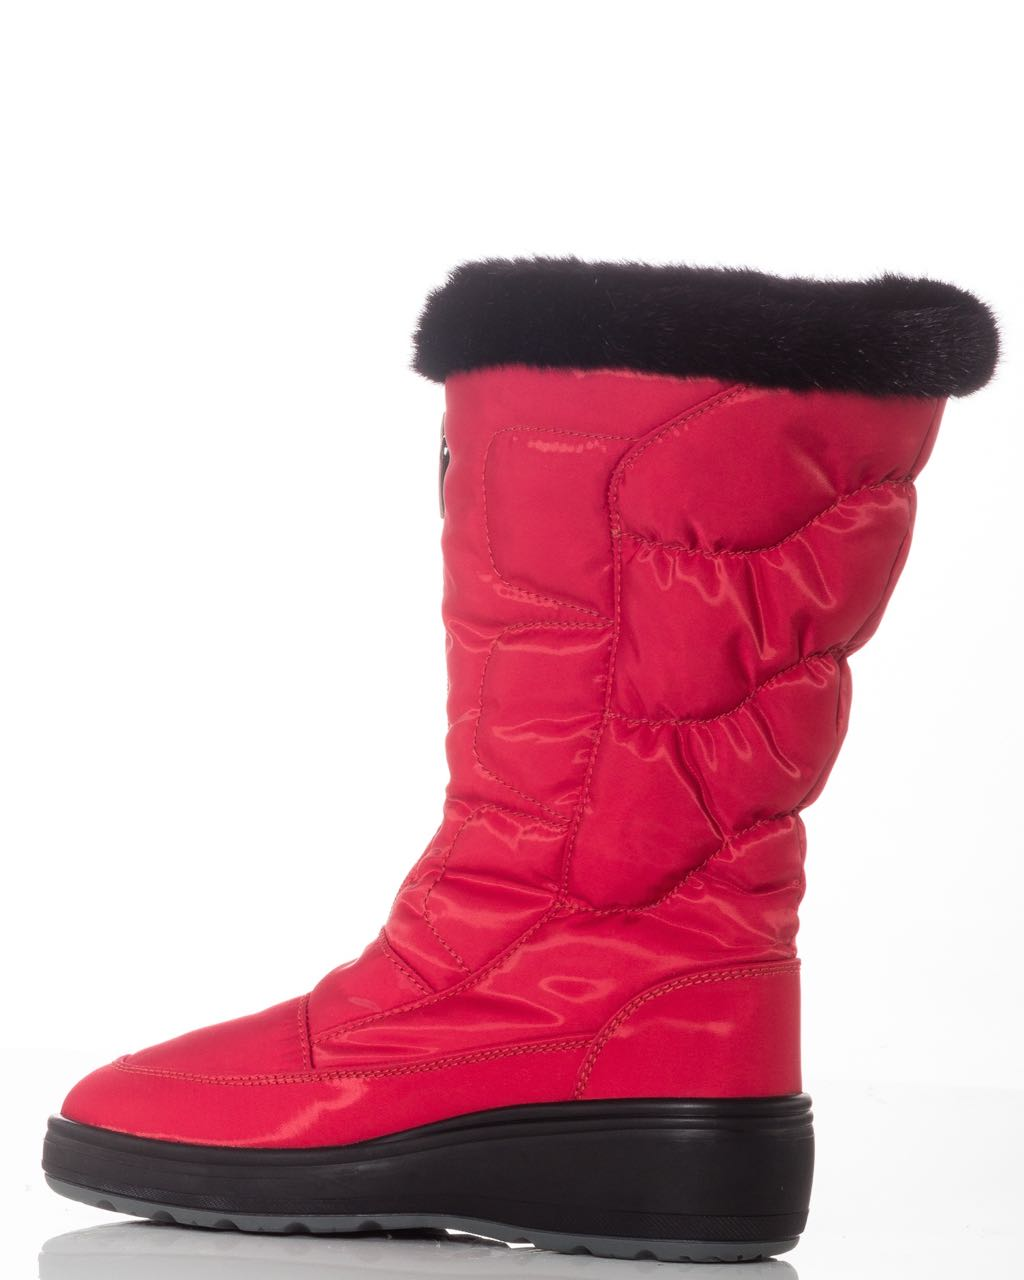 Pajar Winter Snow Boots LOUISE RED | Sport Collection